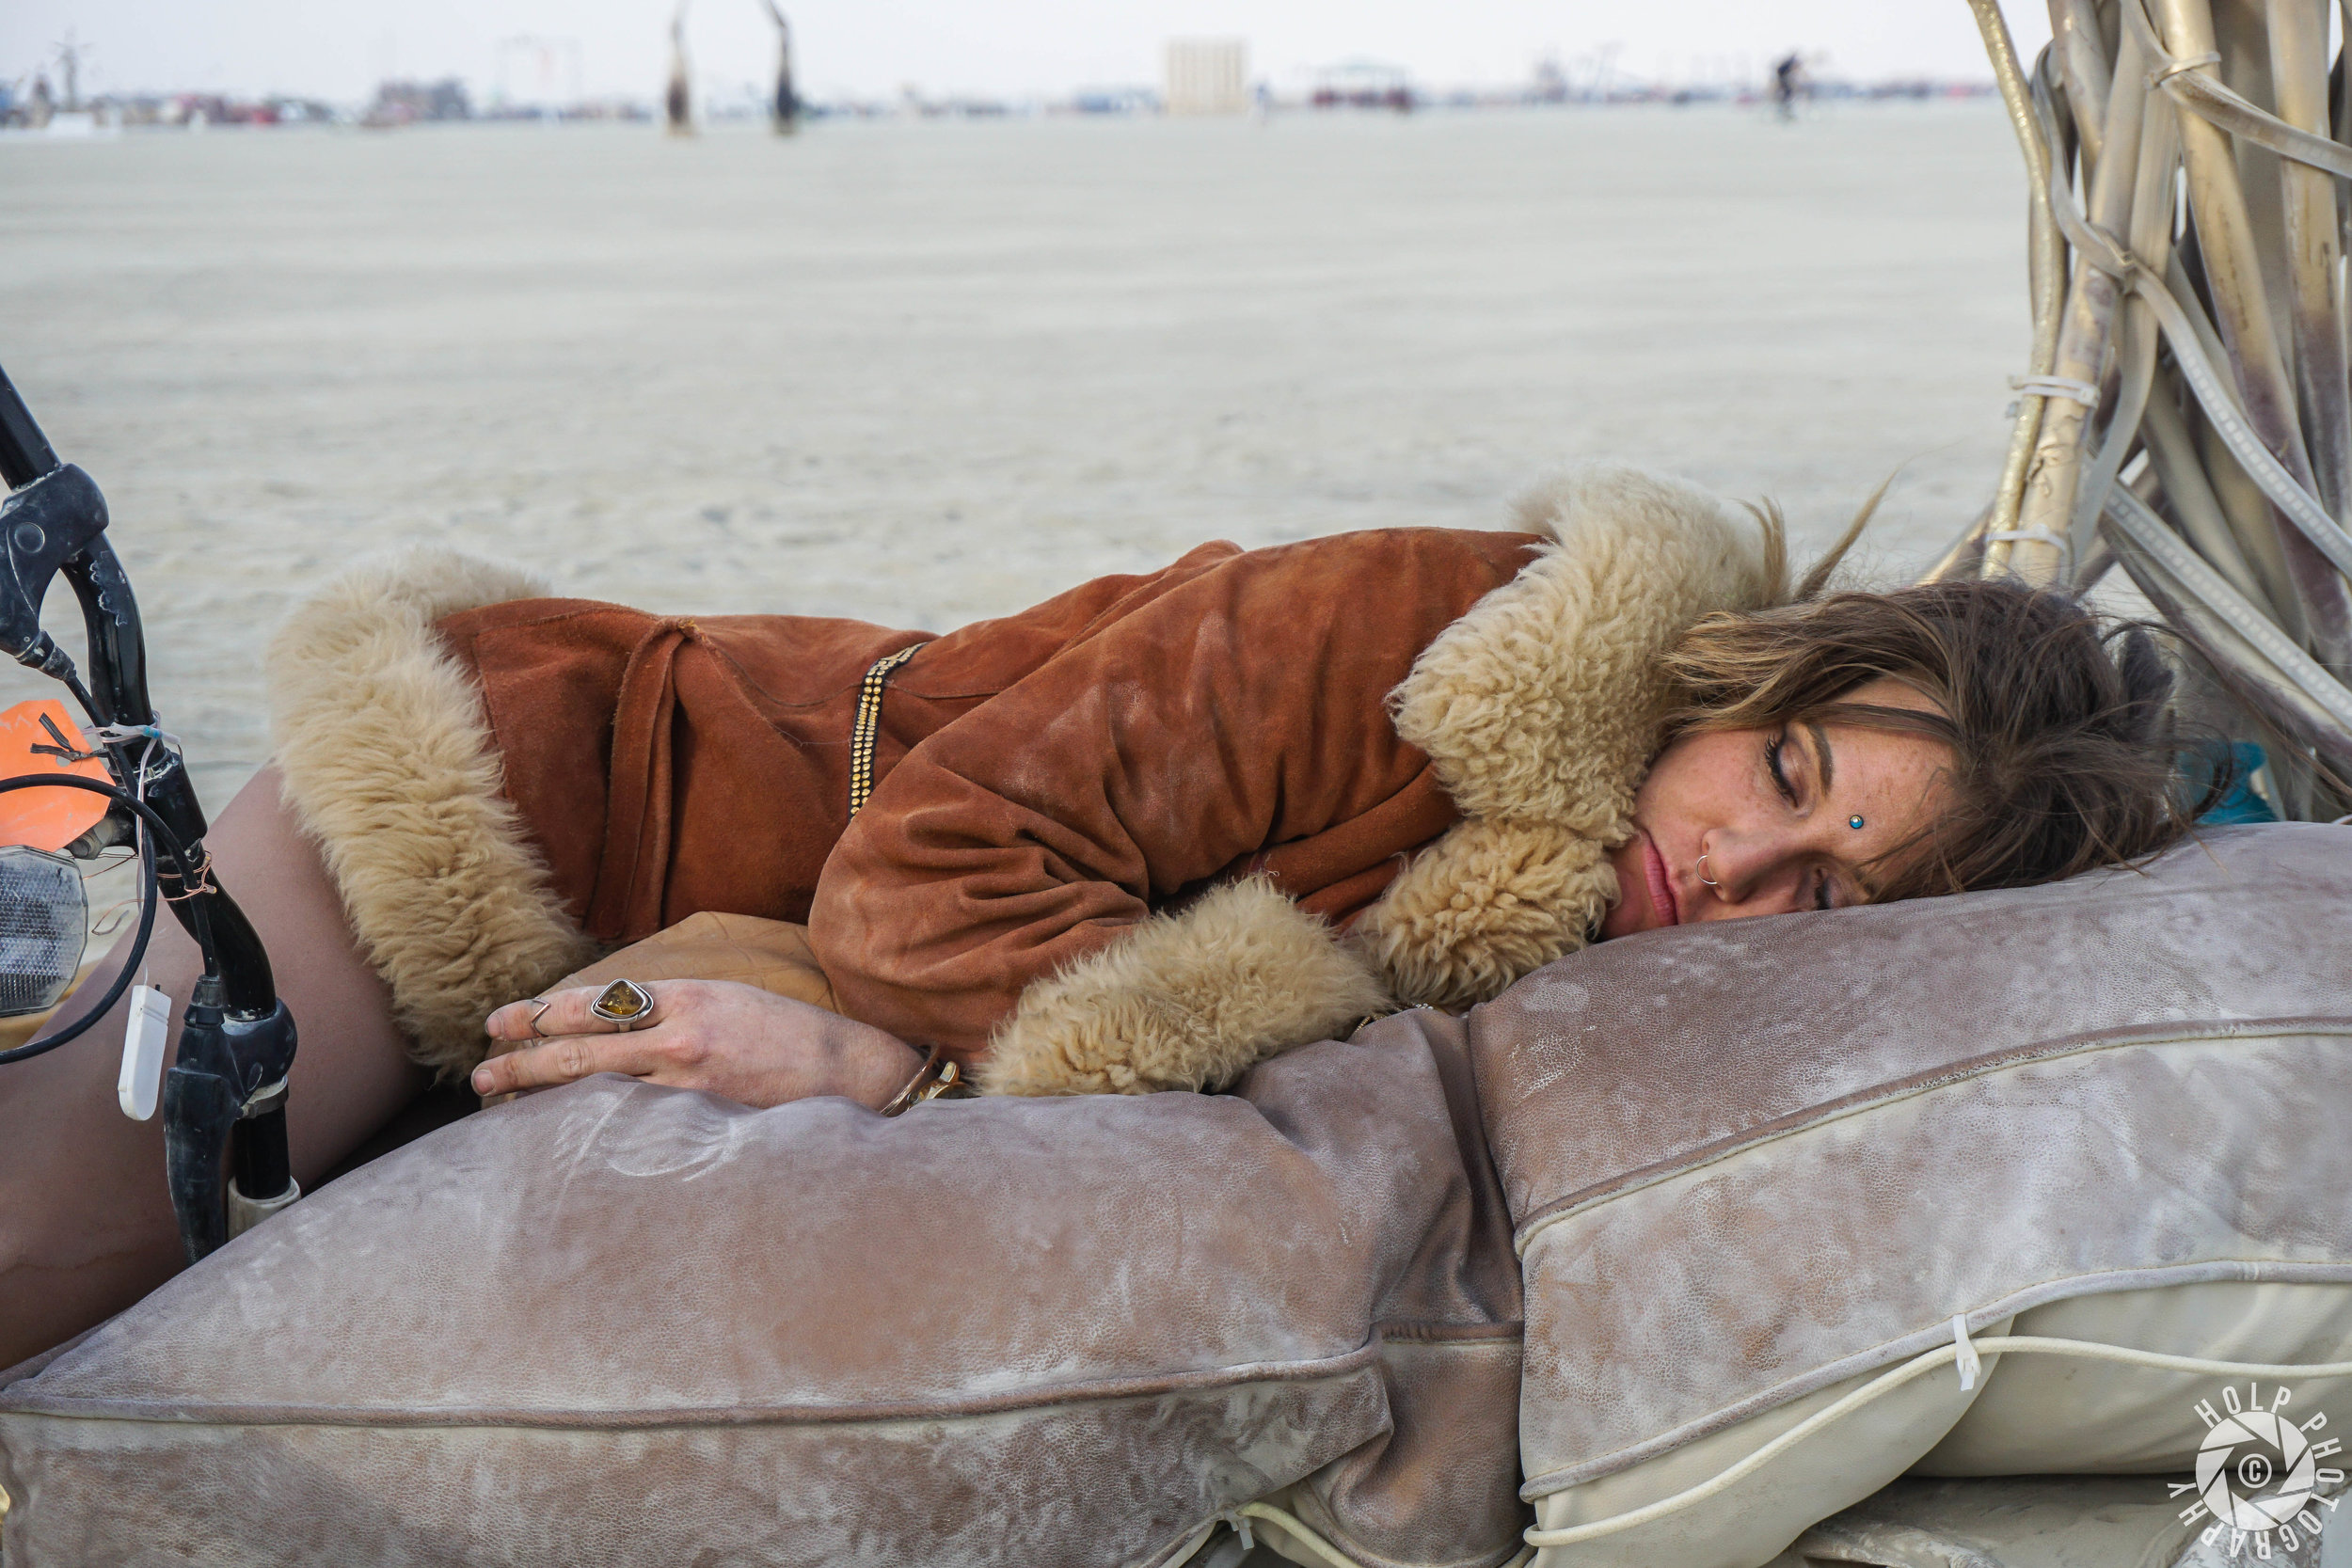 Beautiful candid photo of a woman sleeping after a long night of partying.